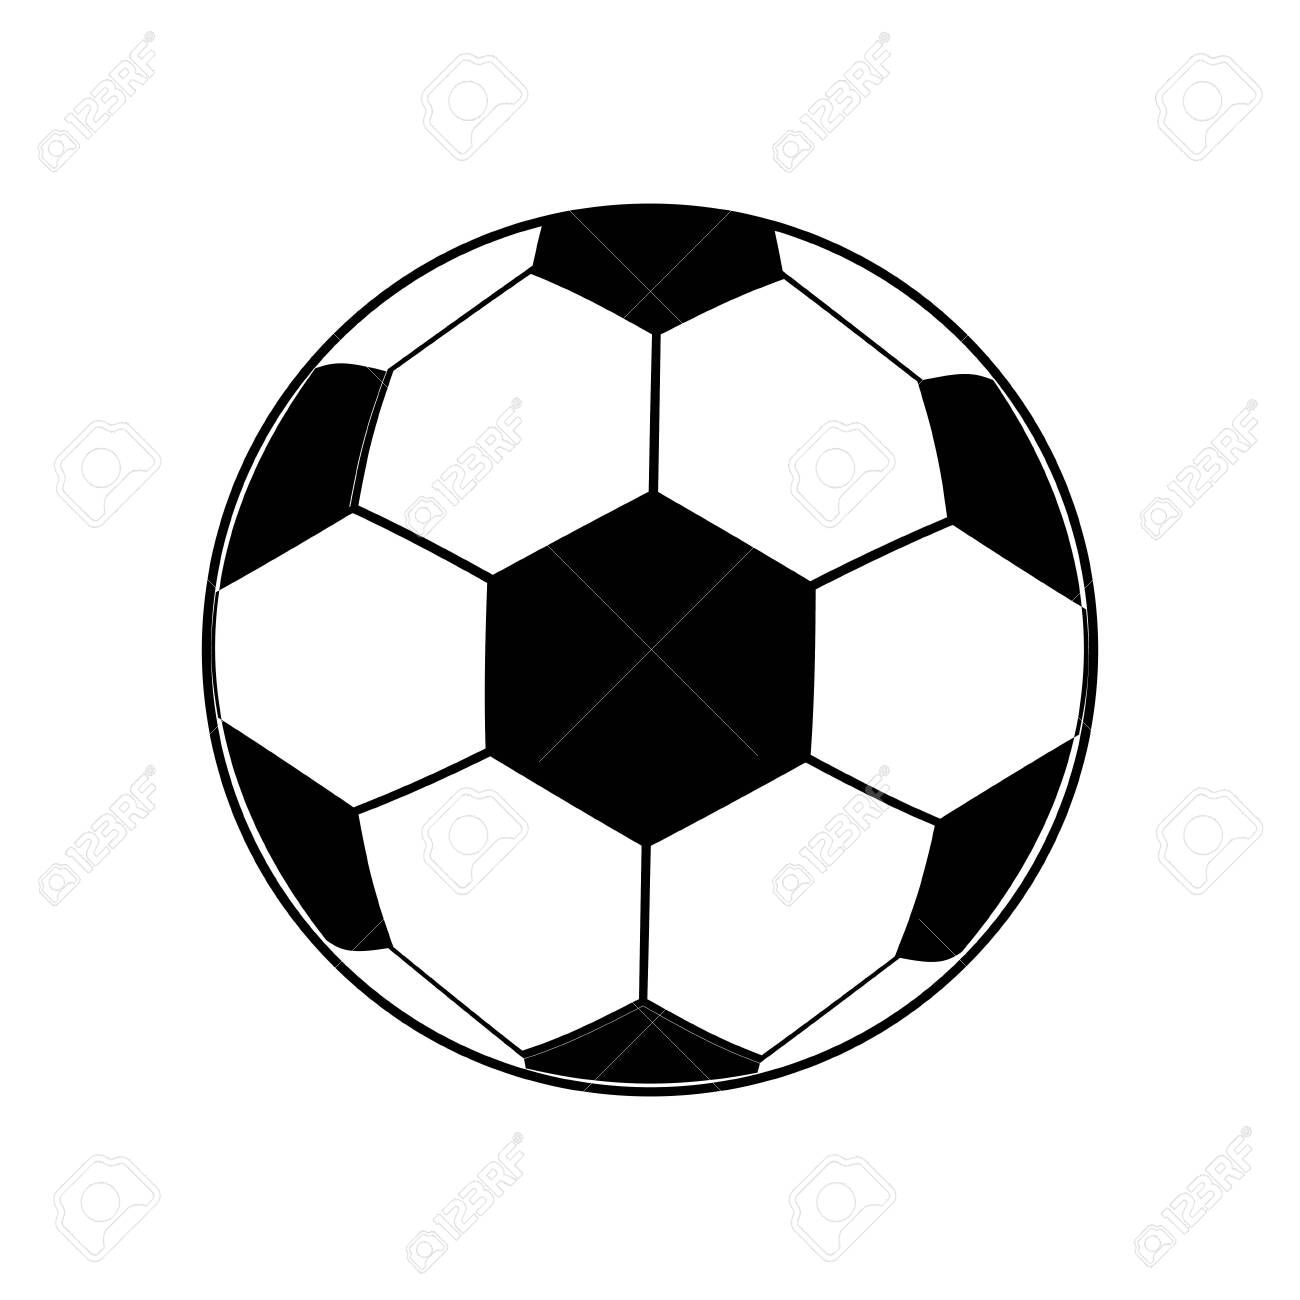 Soccer Ball Icon Over White Background Vector Illustration Affiliate Icon Ball Soccer White Illustration Soccer Ball Soccer White Background